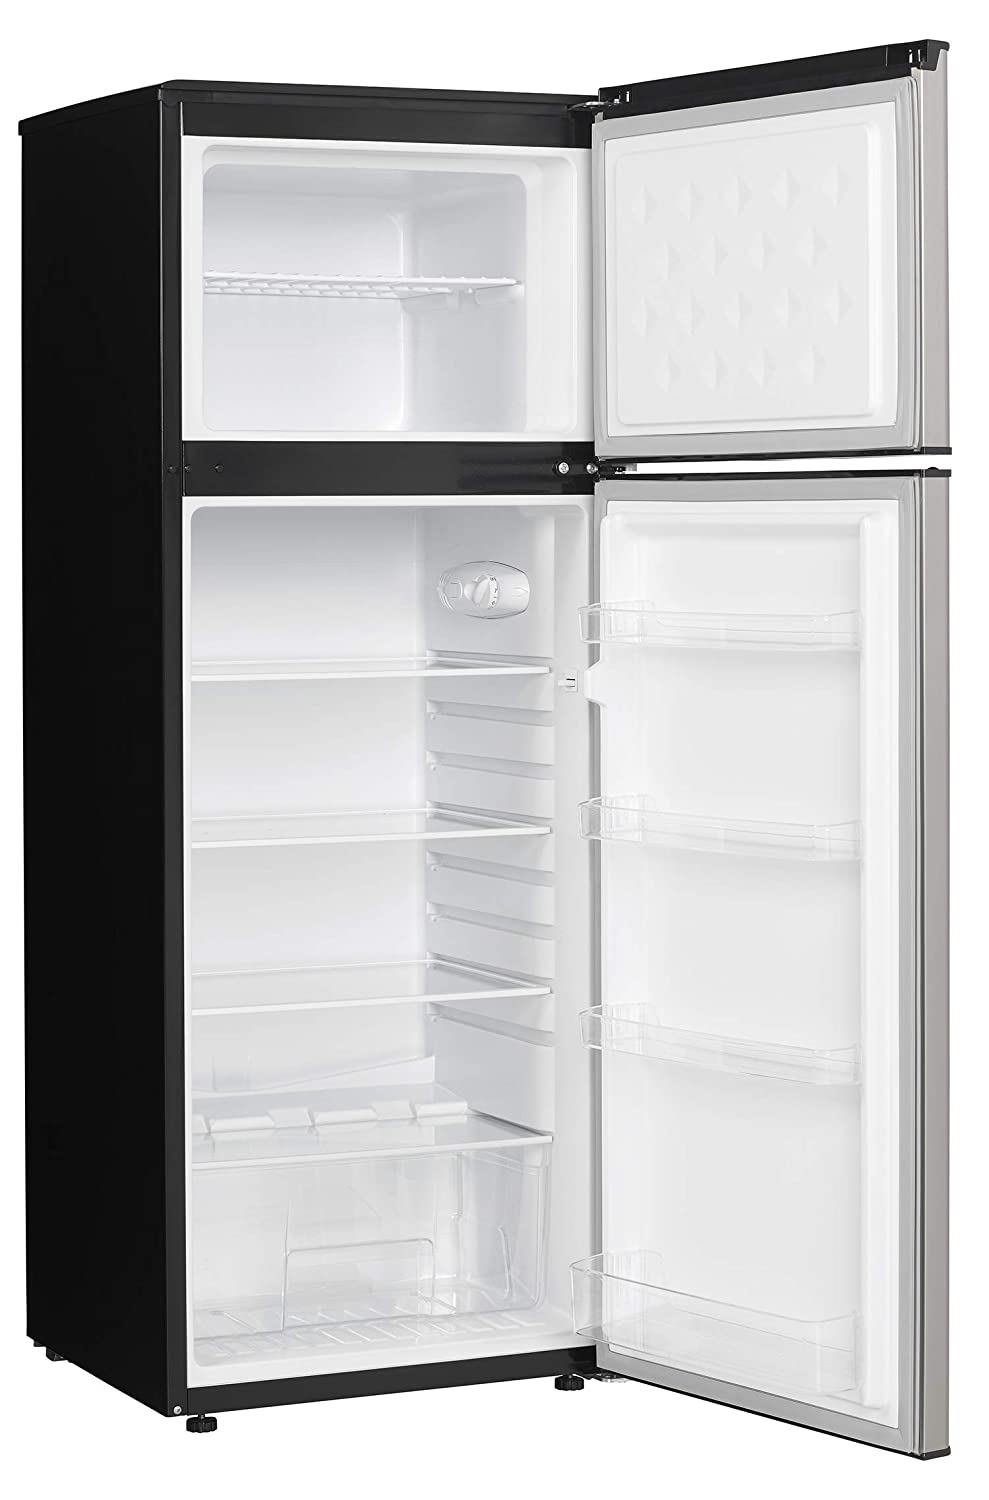 Danby Energy Star 7.3-Cu Ft Apartment Size Refrigerator with Top-Mount Freezer in Spotless Steel//Black